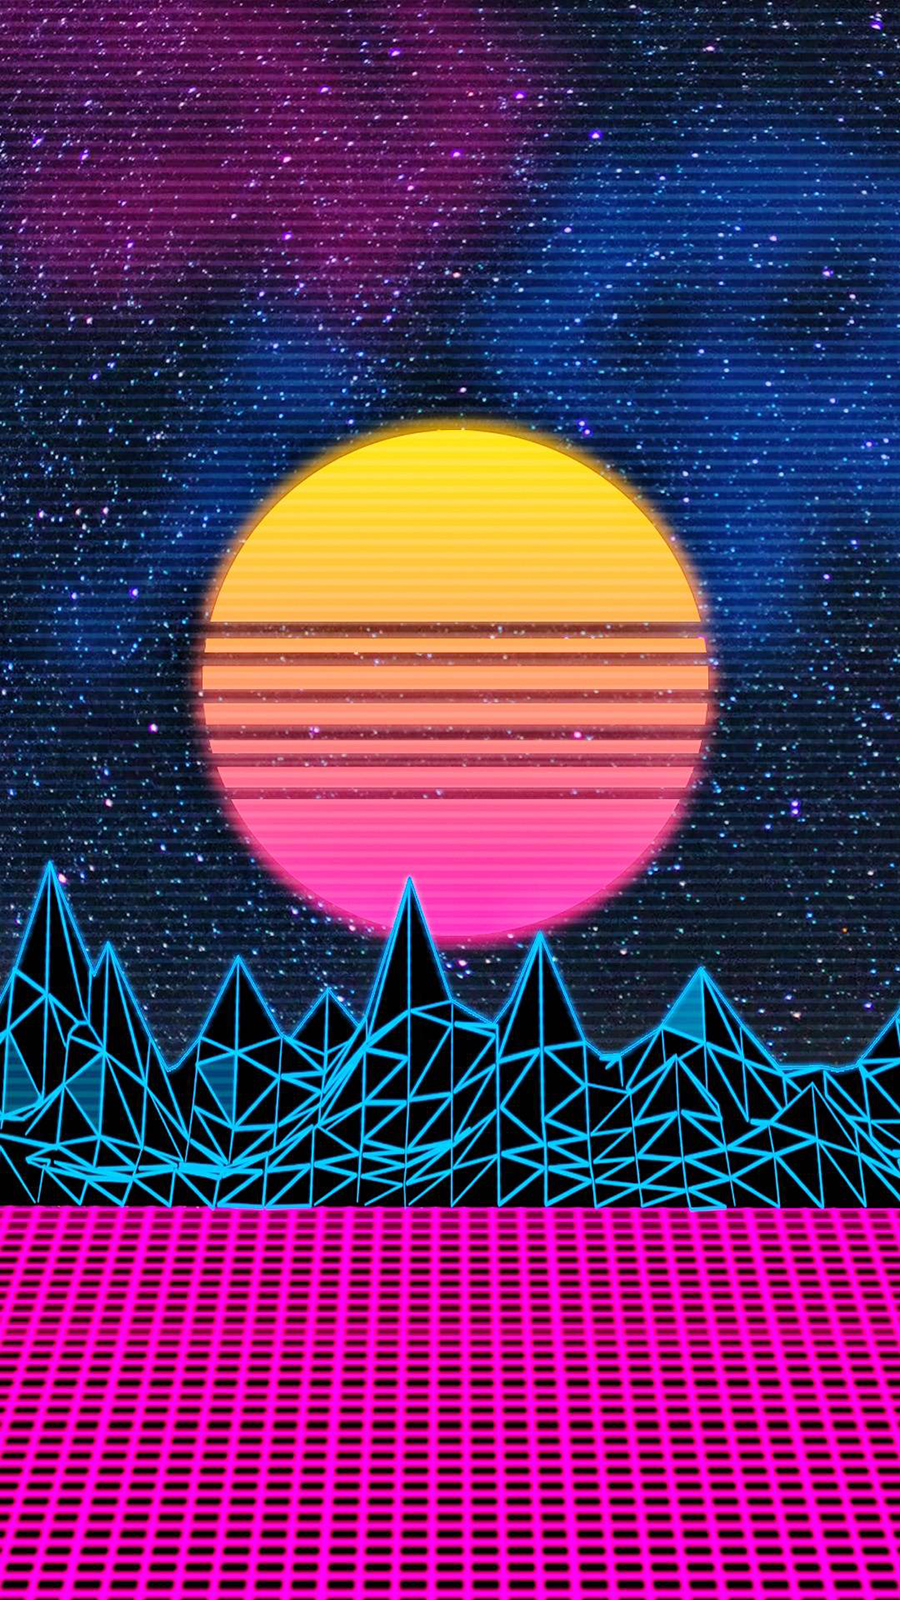 Retro Sunset Cyber Wallpapers Free Download For Your Device